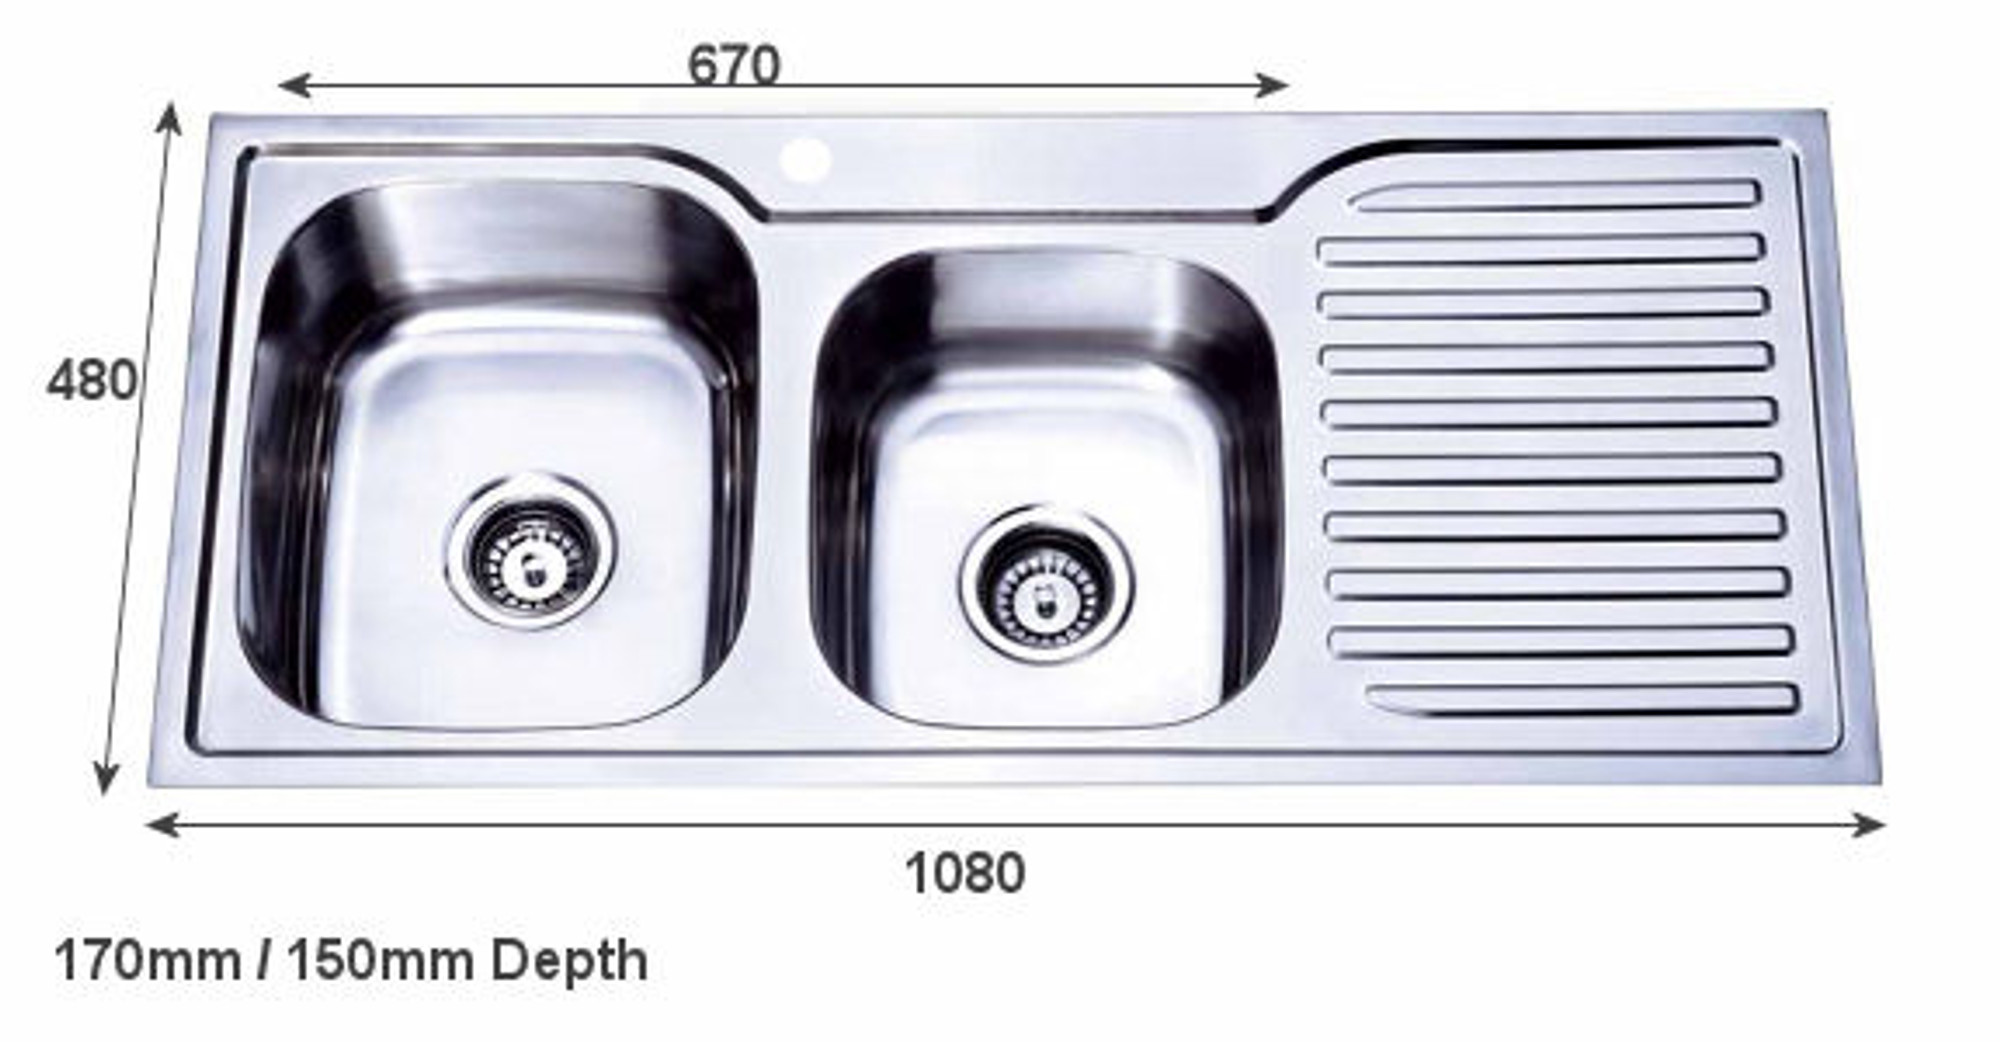 Peachy Project Inset Kitchen Sink 1080Mm 1 1 2 Bowl With Draining Board Download Free Architecture Designs Scobabritishbridgeorg